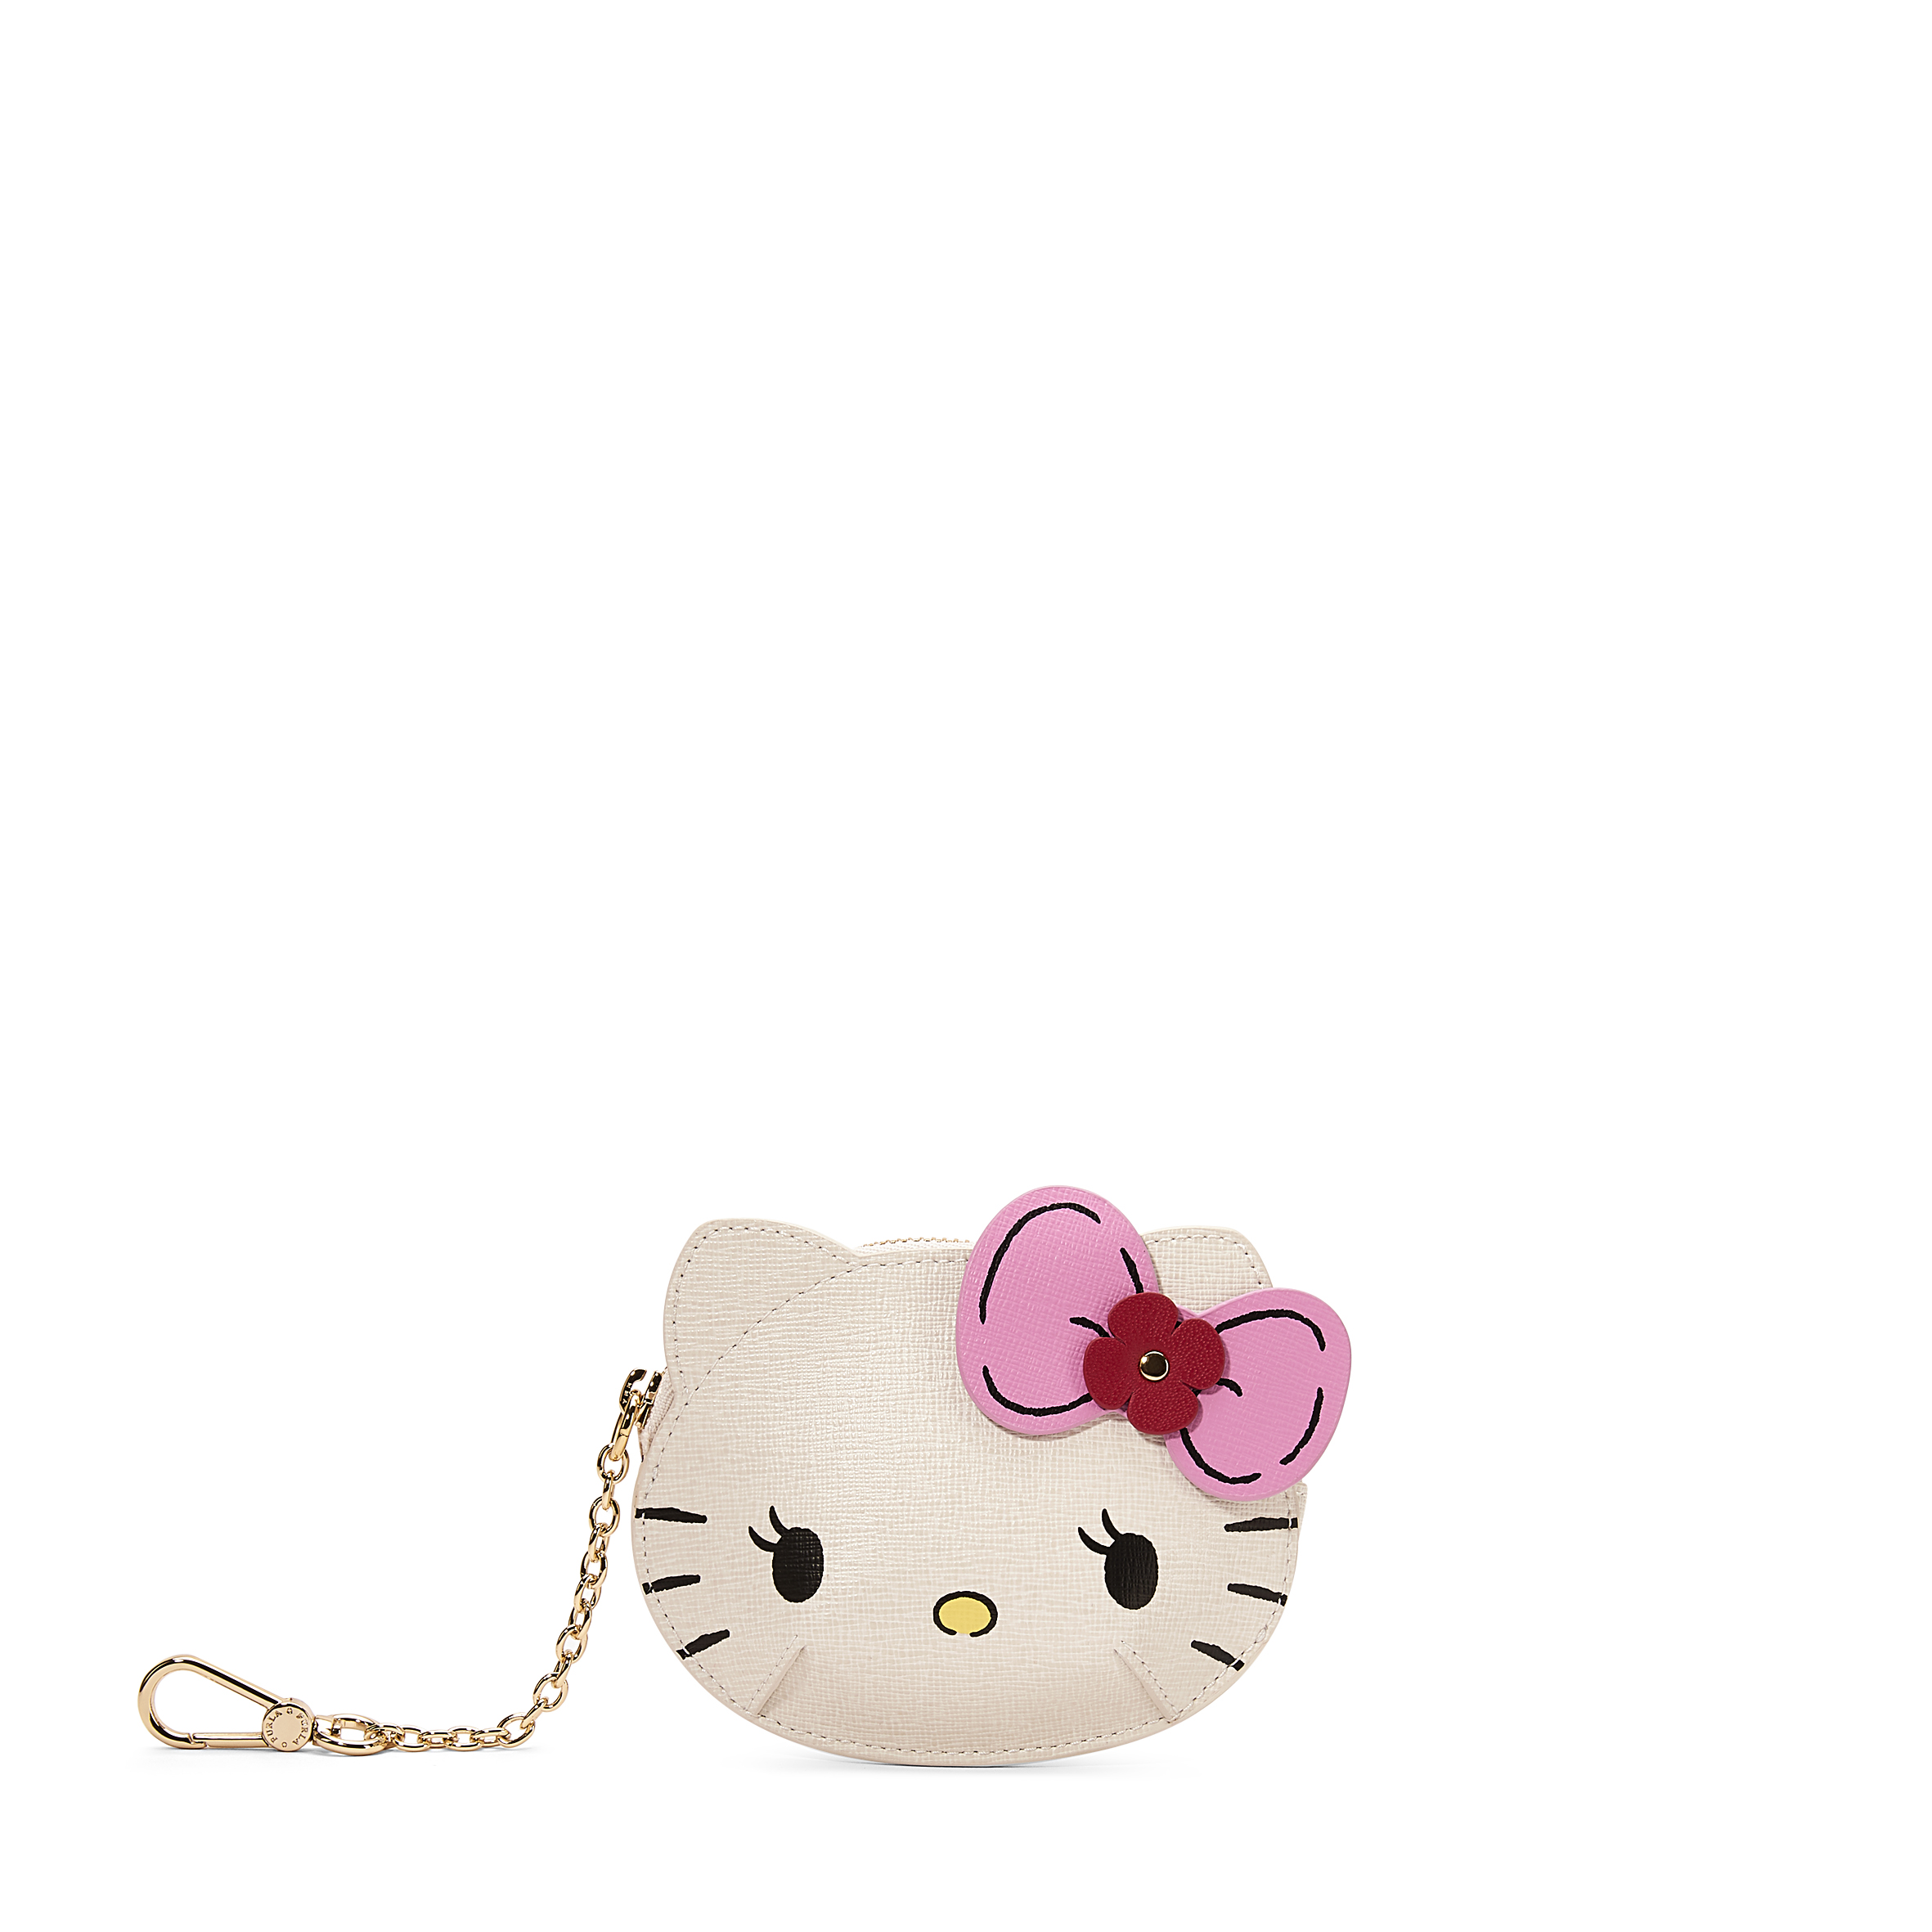 956053_PZ09_KITTY S COIN CASE BEAR_PETALO_3B